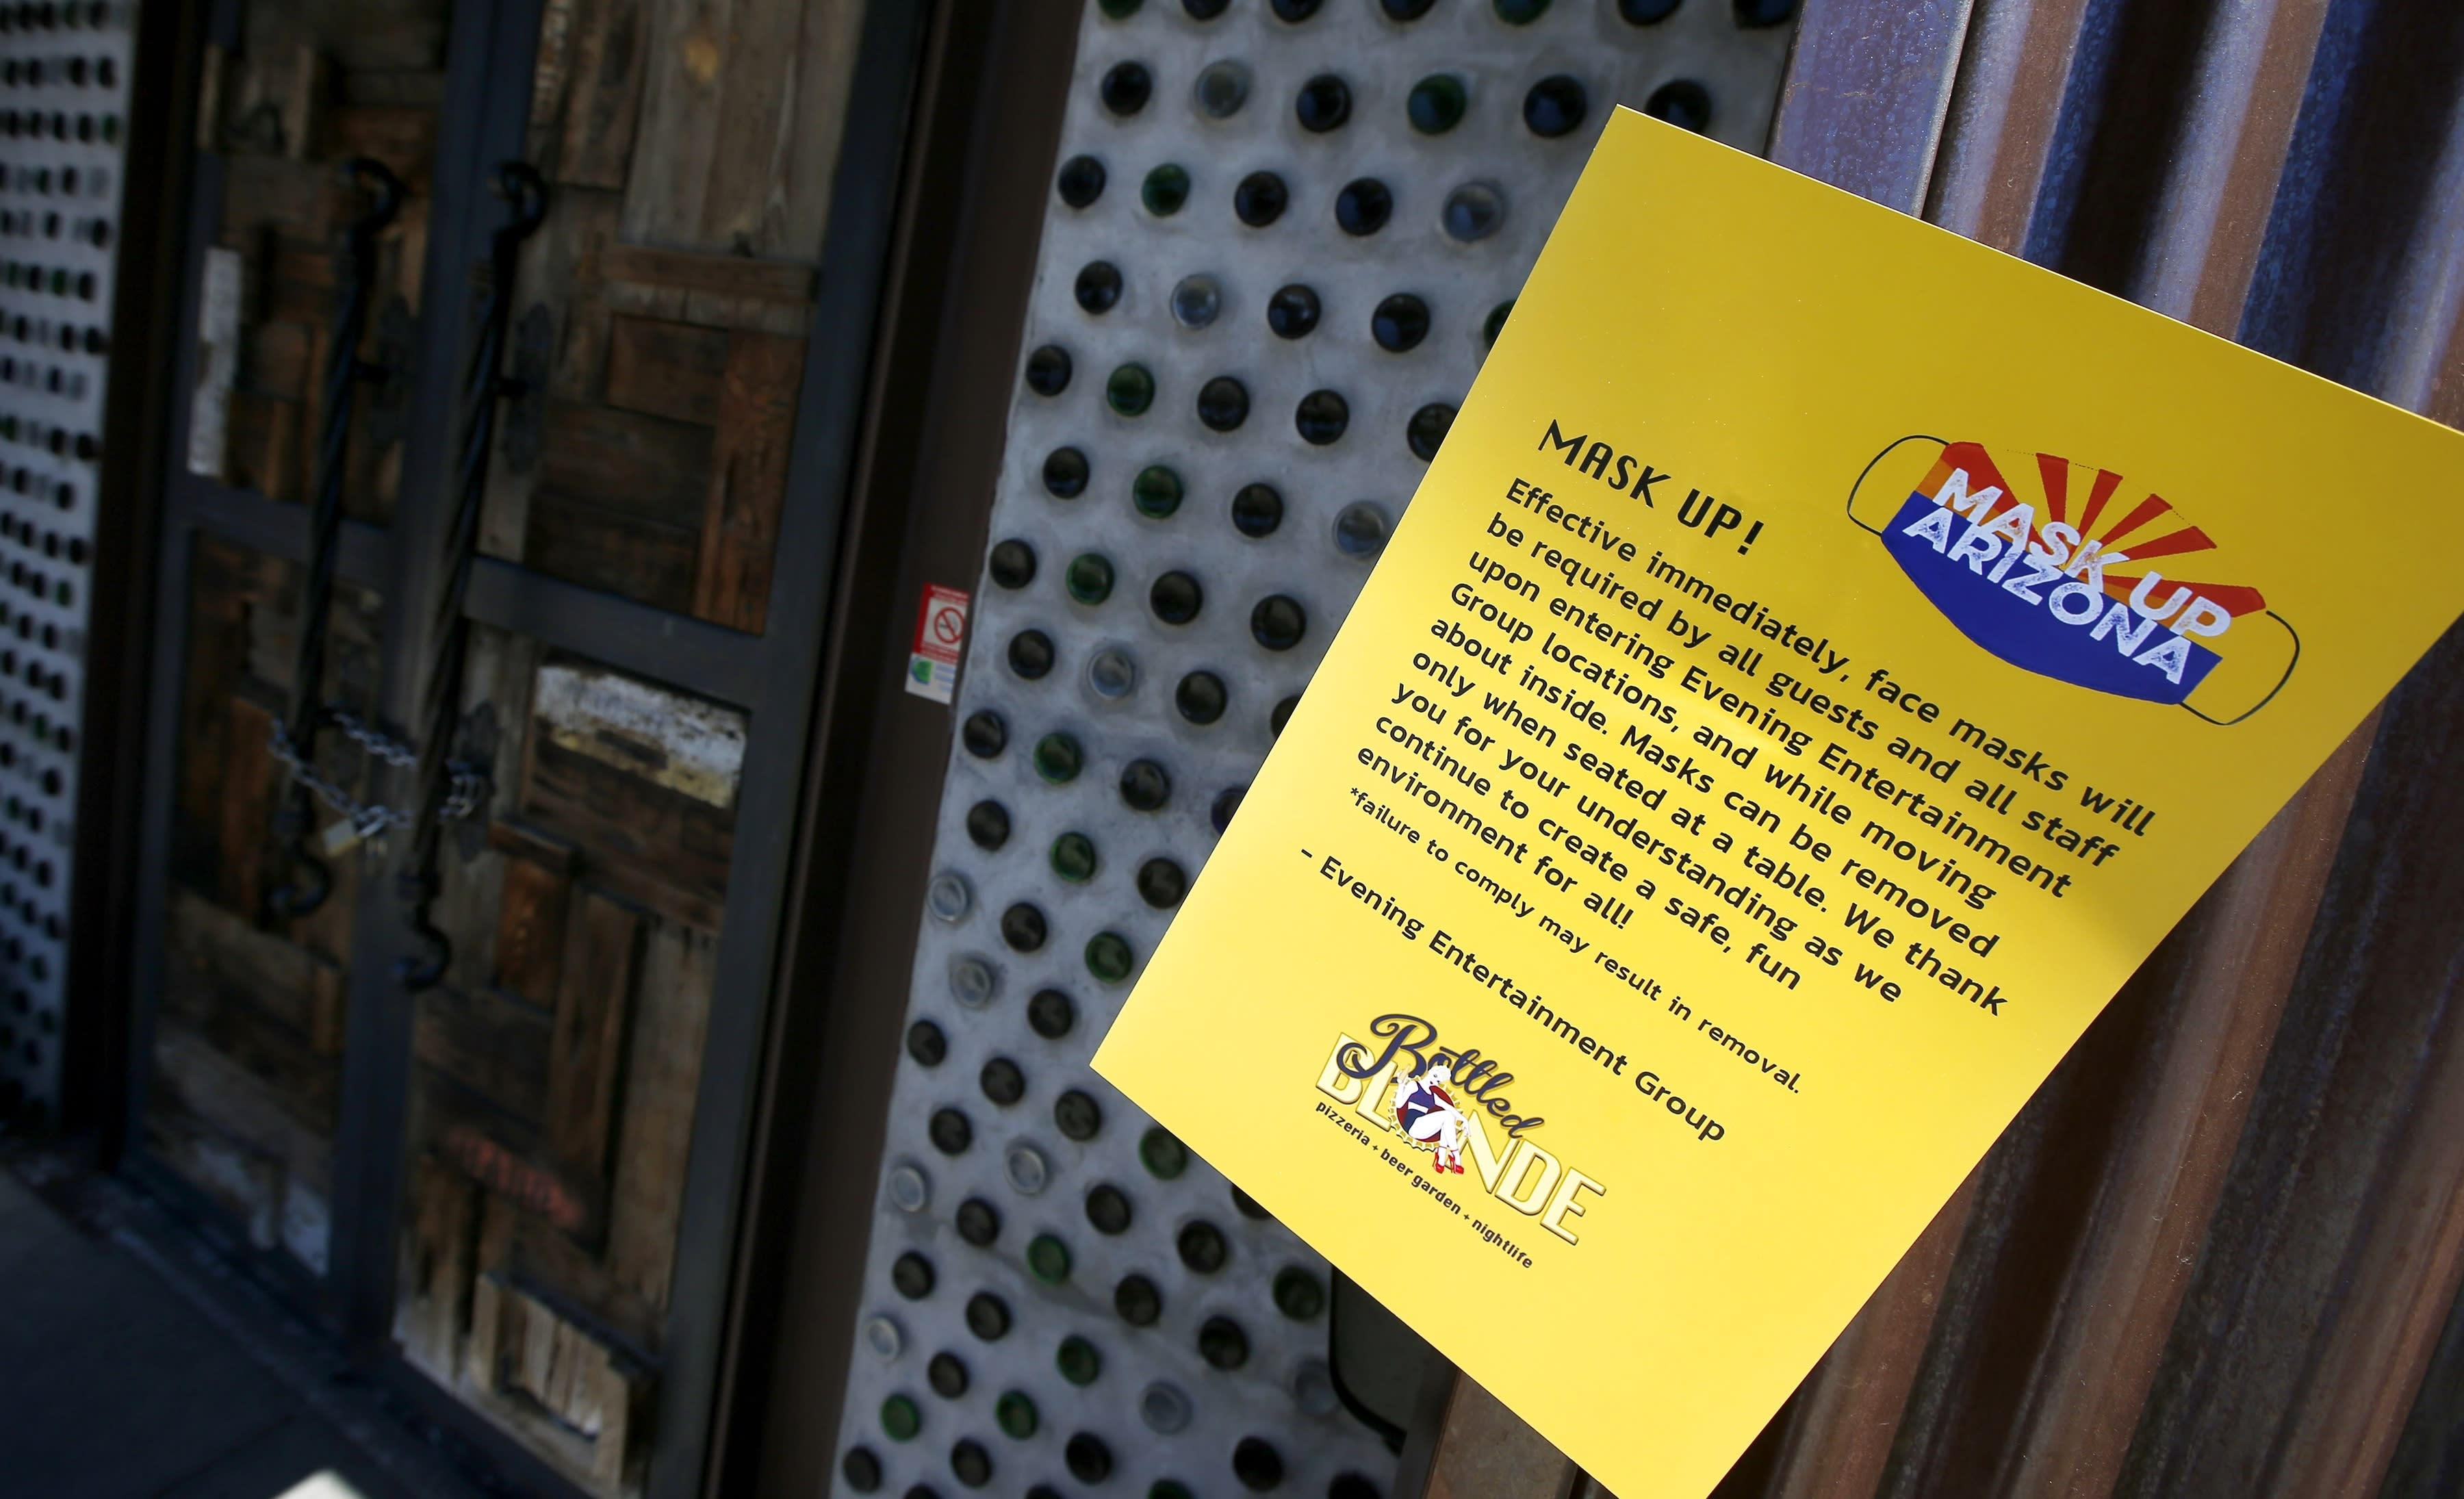 Bottled Blonde, one of the restaurant bars closed for the next 30 days due to the surge in coronavirus cases, has a posted rules sign but also has a padlocked front door Tuesday, June 30, 2020, in Scottsdale, Ariz. (AP Photo/Ross D. Franklin)